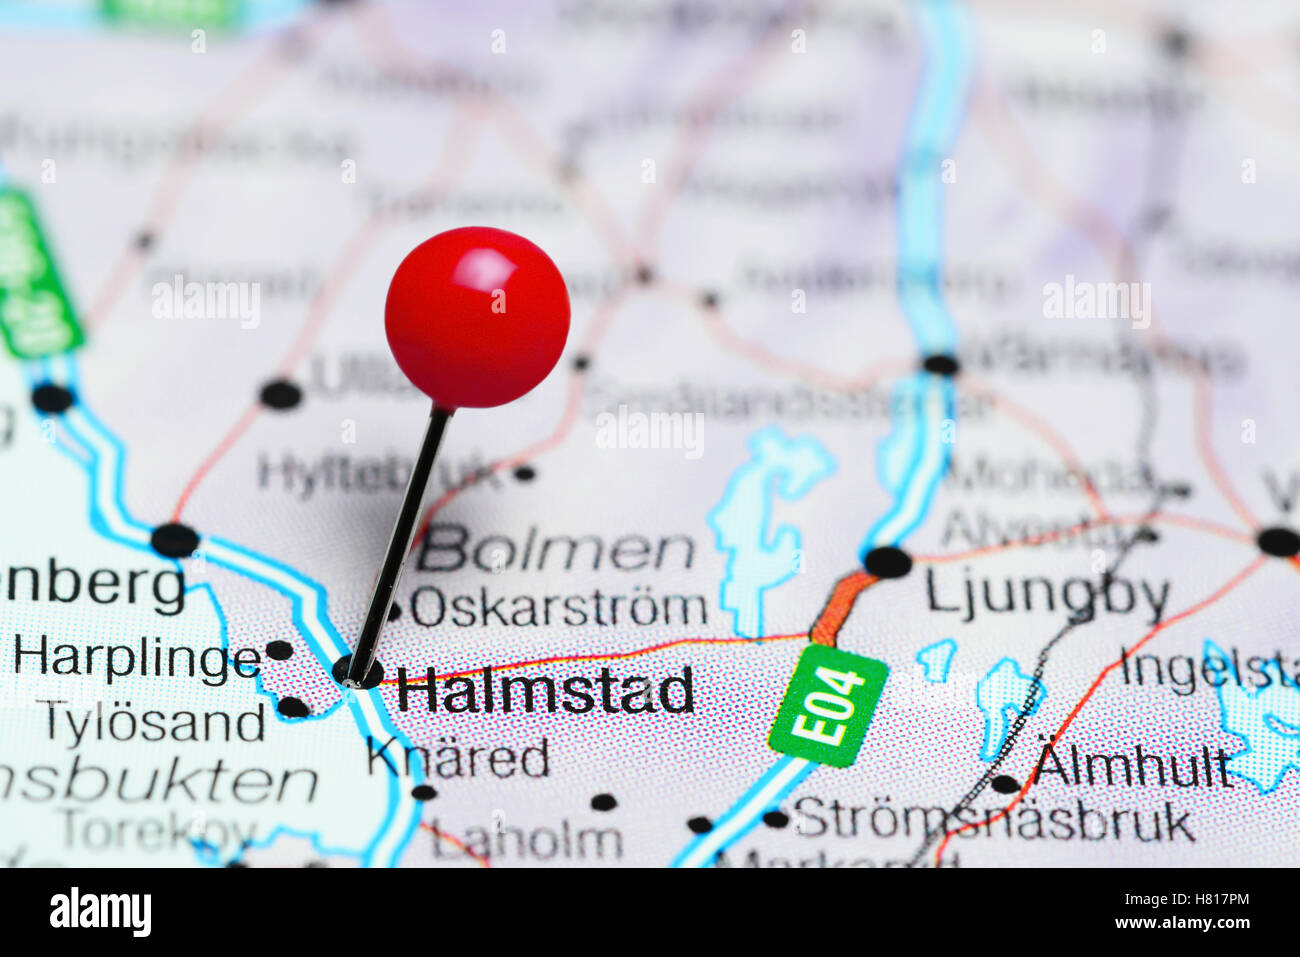 Halmstad Pinned On A Map Of Sweden Stock Photo Royalty Free Image - Sweden map halmstad